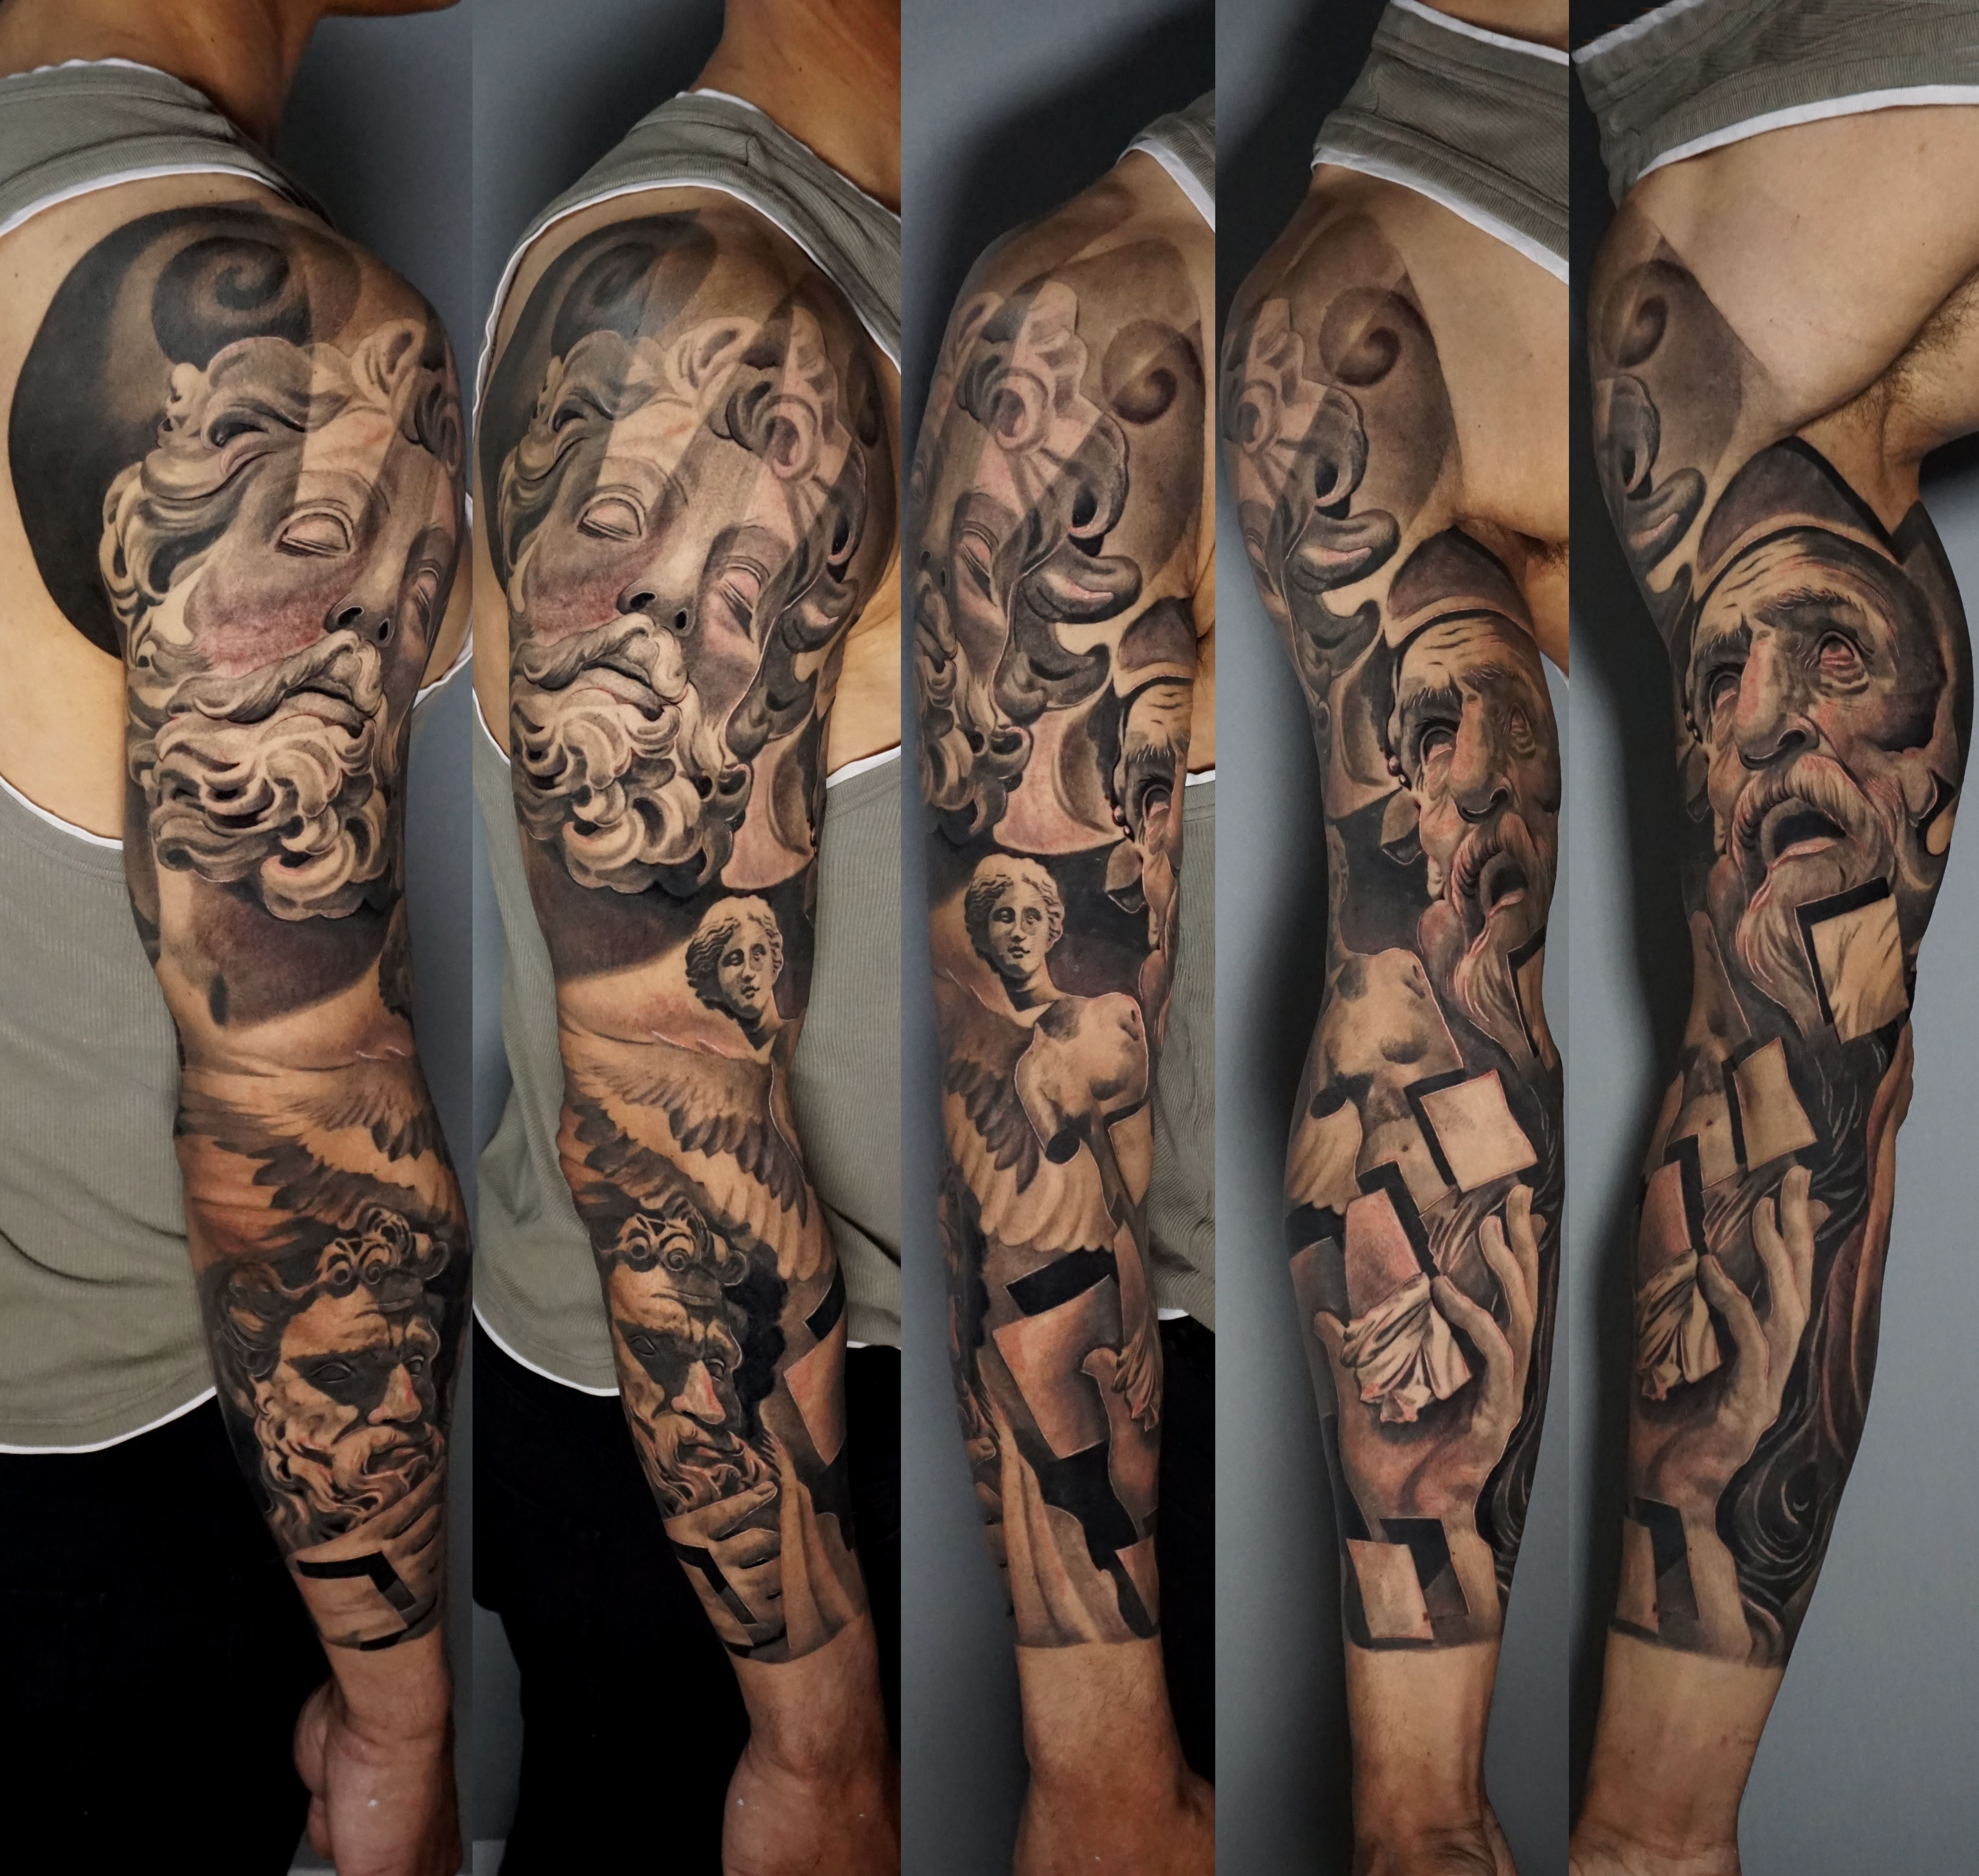 Black and grey tattoos in london full sleeves portraits